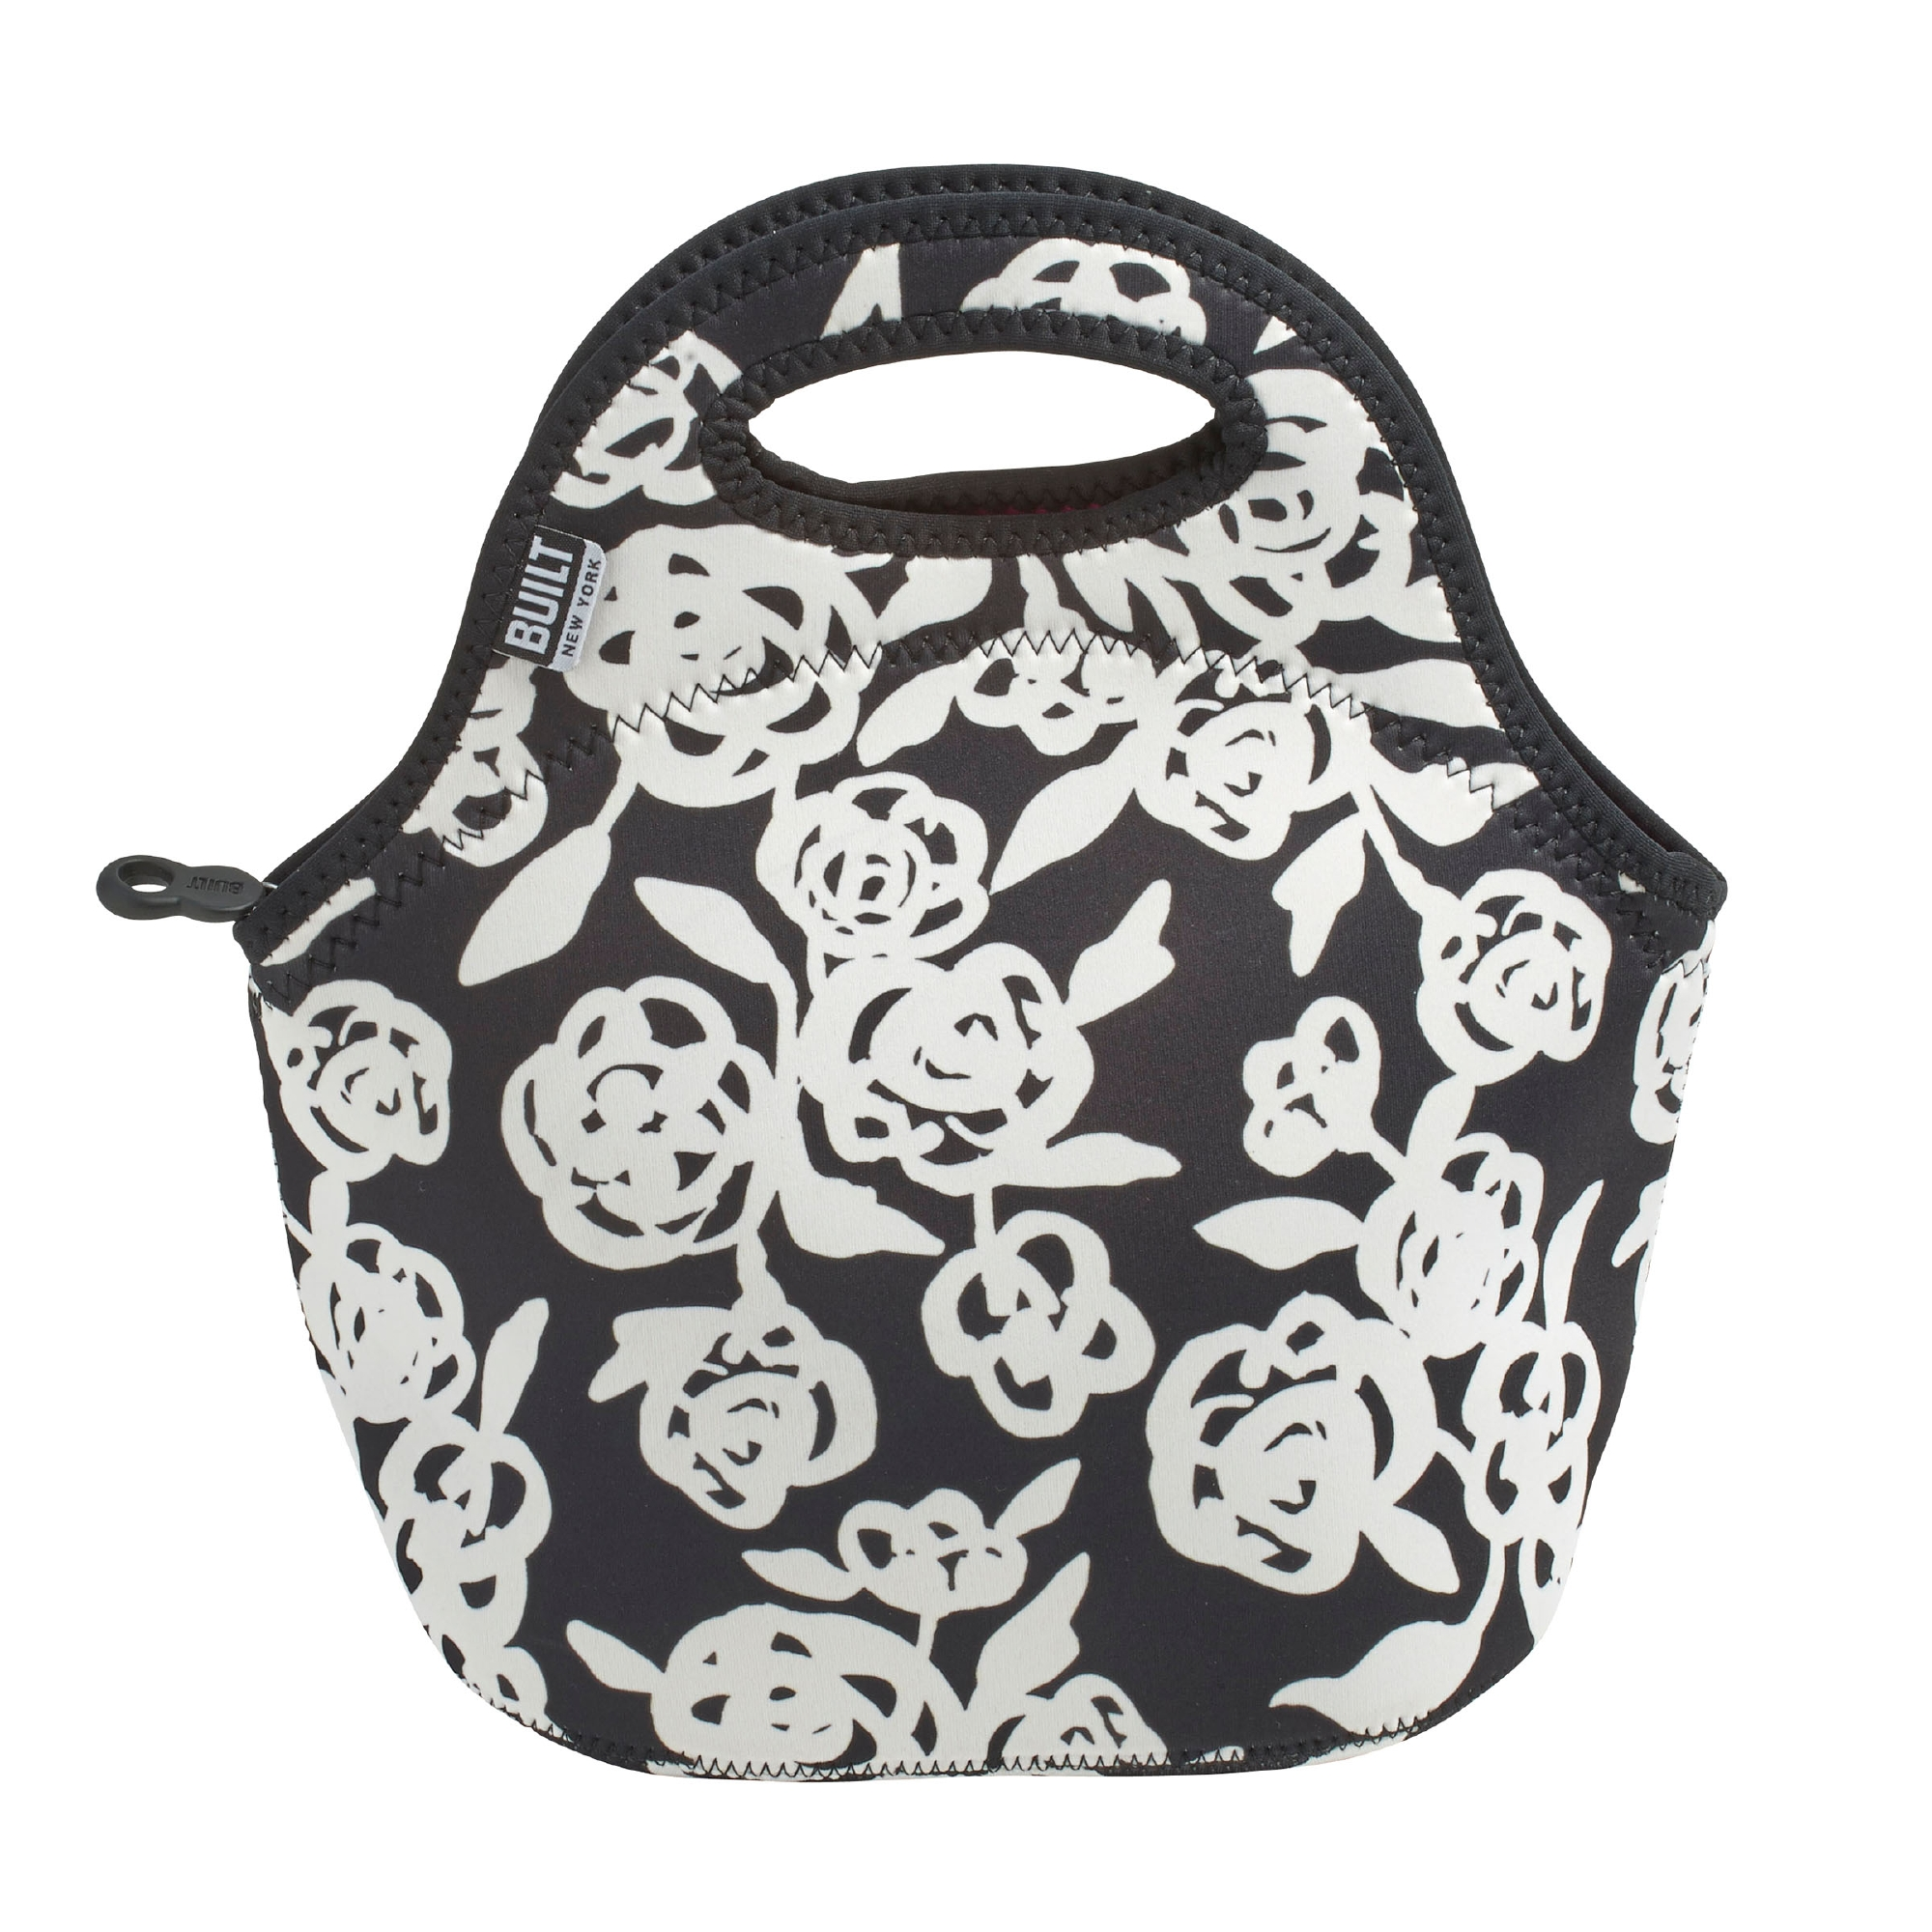 Built Gourmet Getaway Neoprene Lunch Tote Garden Rose Black & White